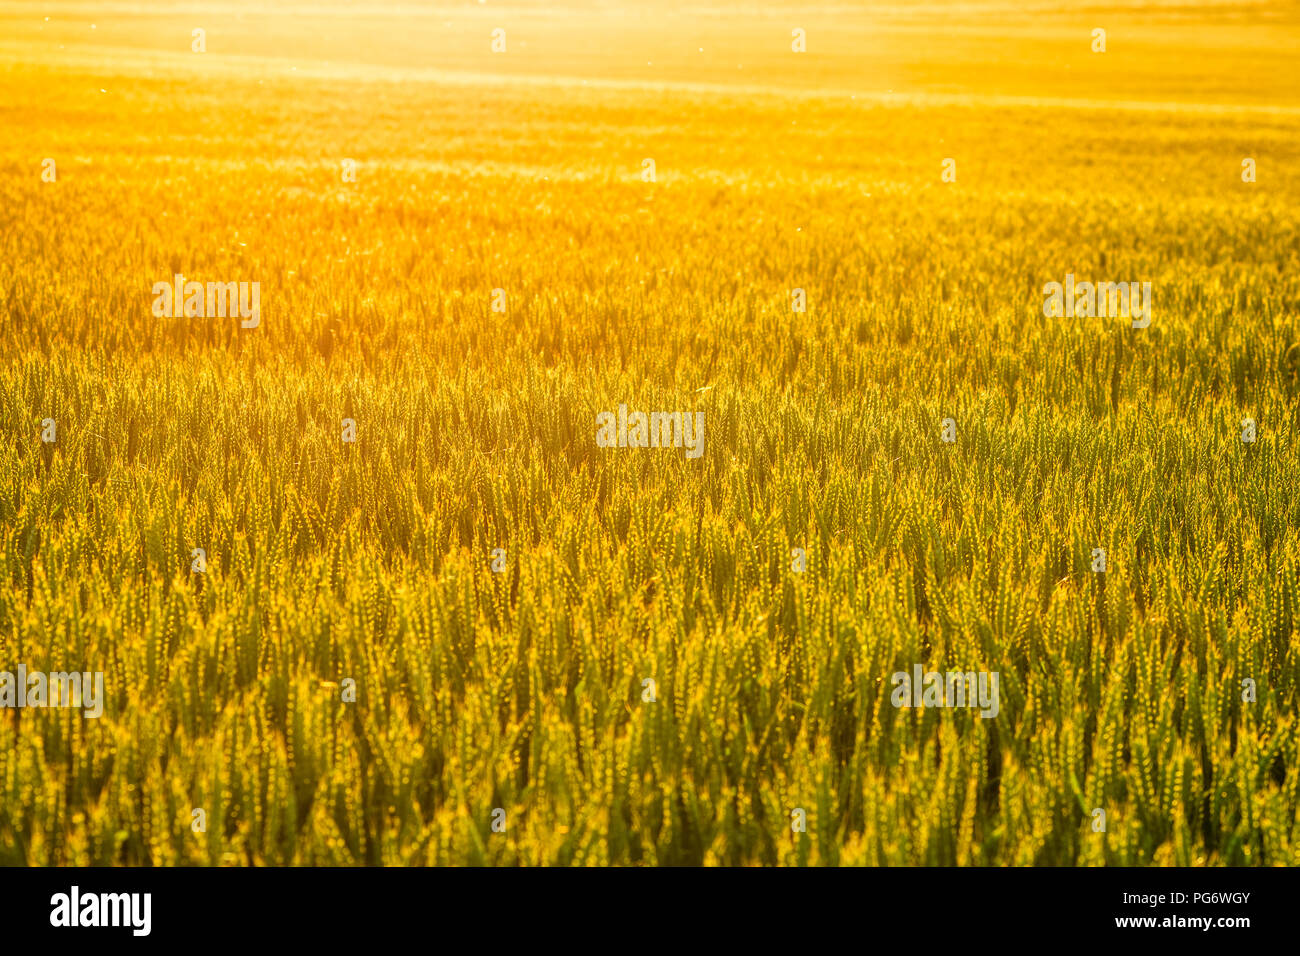 UK, Scotland, East Lothian, Sunset at the end of a hot day glows through a field of wheat (Triticum) Stock Photo